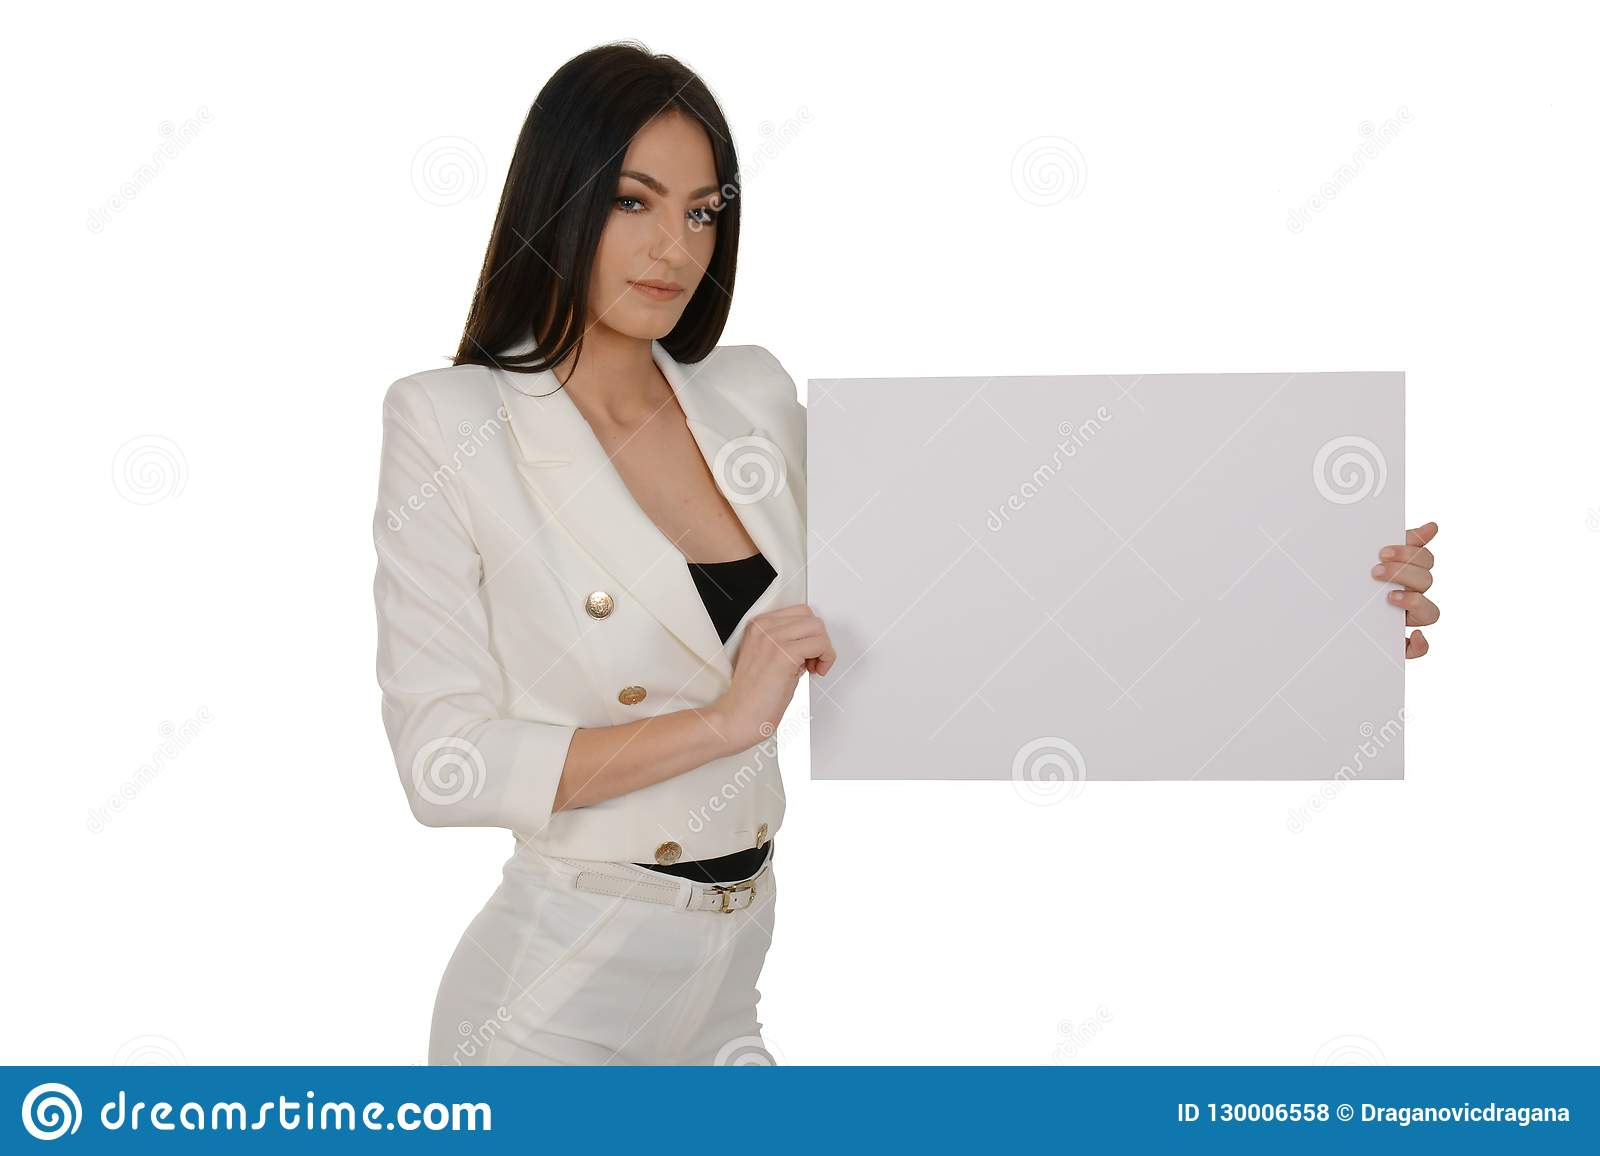 Young woman showing blank signboard or copy-space for slogan or text, over white background